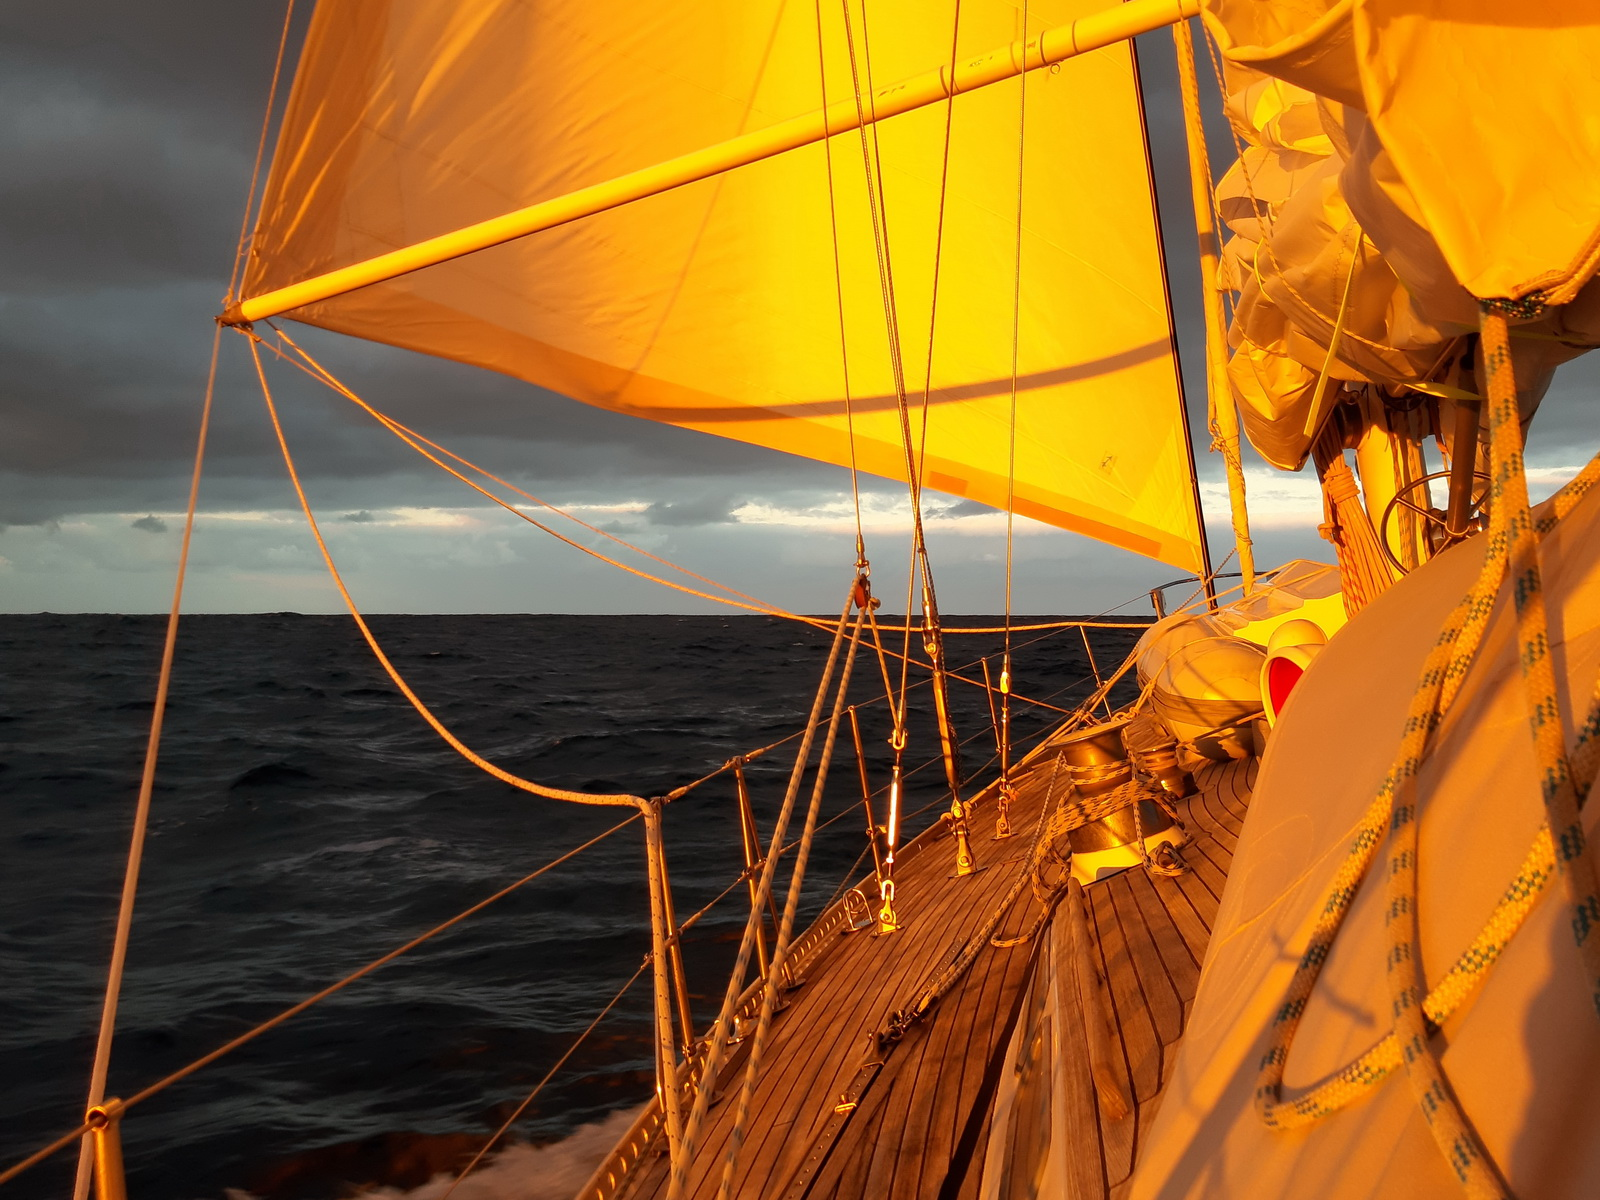 Sunrise on the SY Montana, Swan 48 at the Bay of Biscay